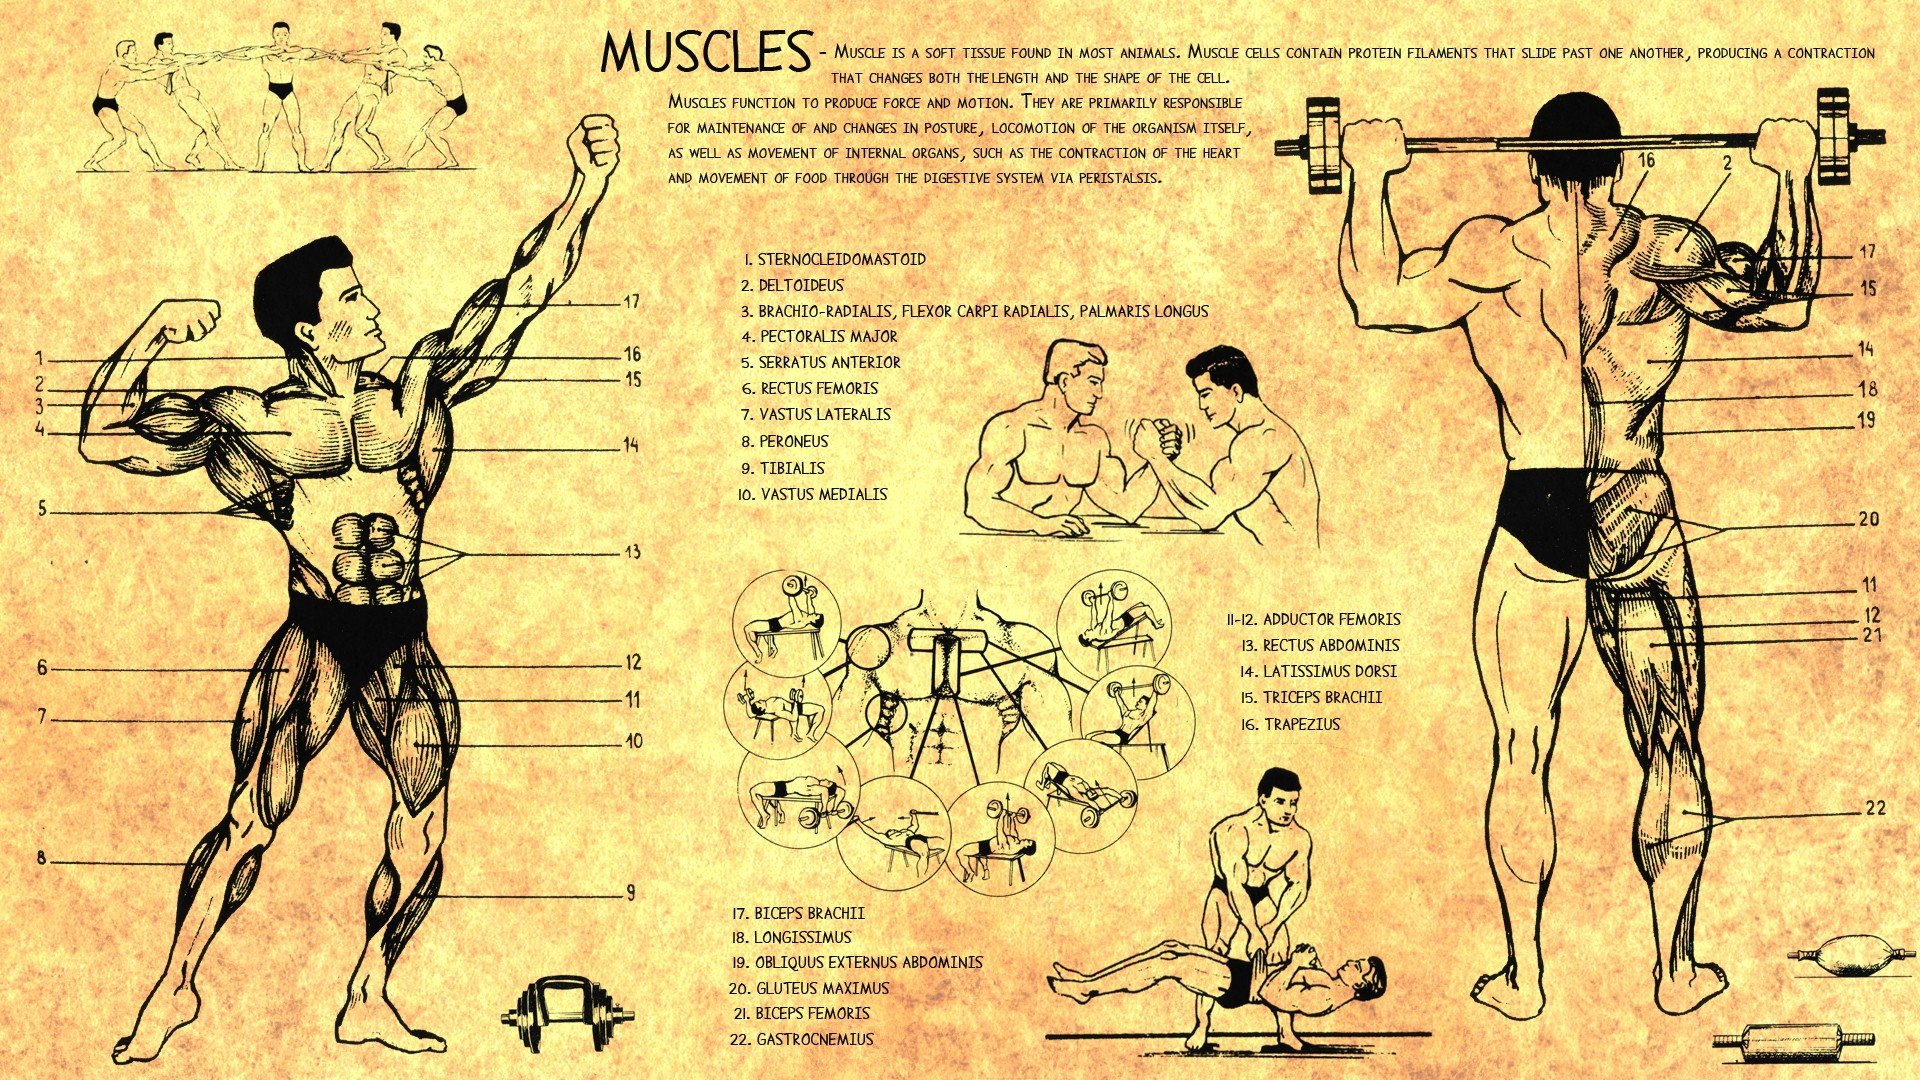 Anatomy-human-muscles-bodybuilding-scheme-training-body-Health-wallpaper-wpc9202386